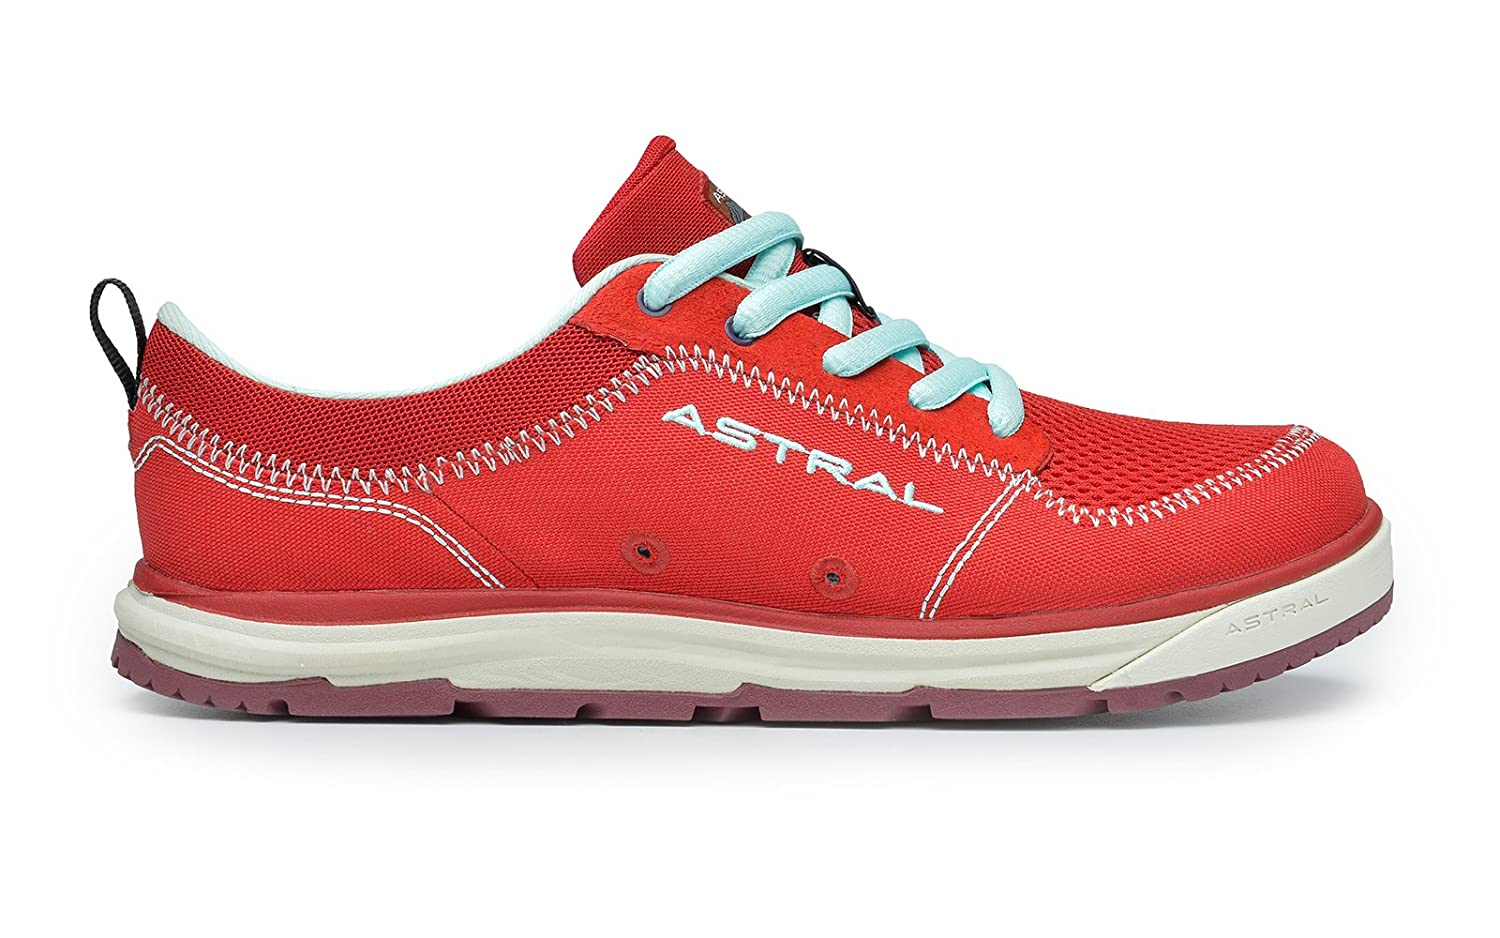 Astral Brewess 2.0 Women's Water Shoe B079C4ZWVQ 8.0|Rosa Red